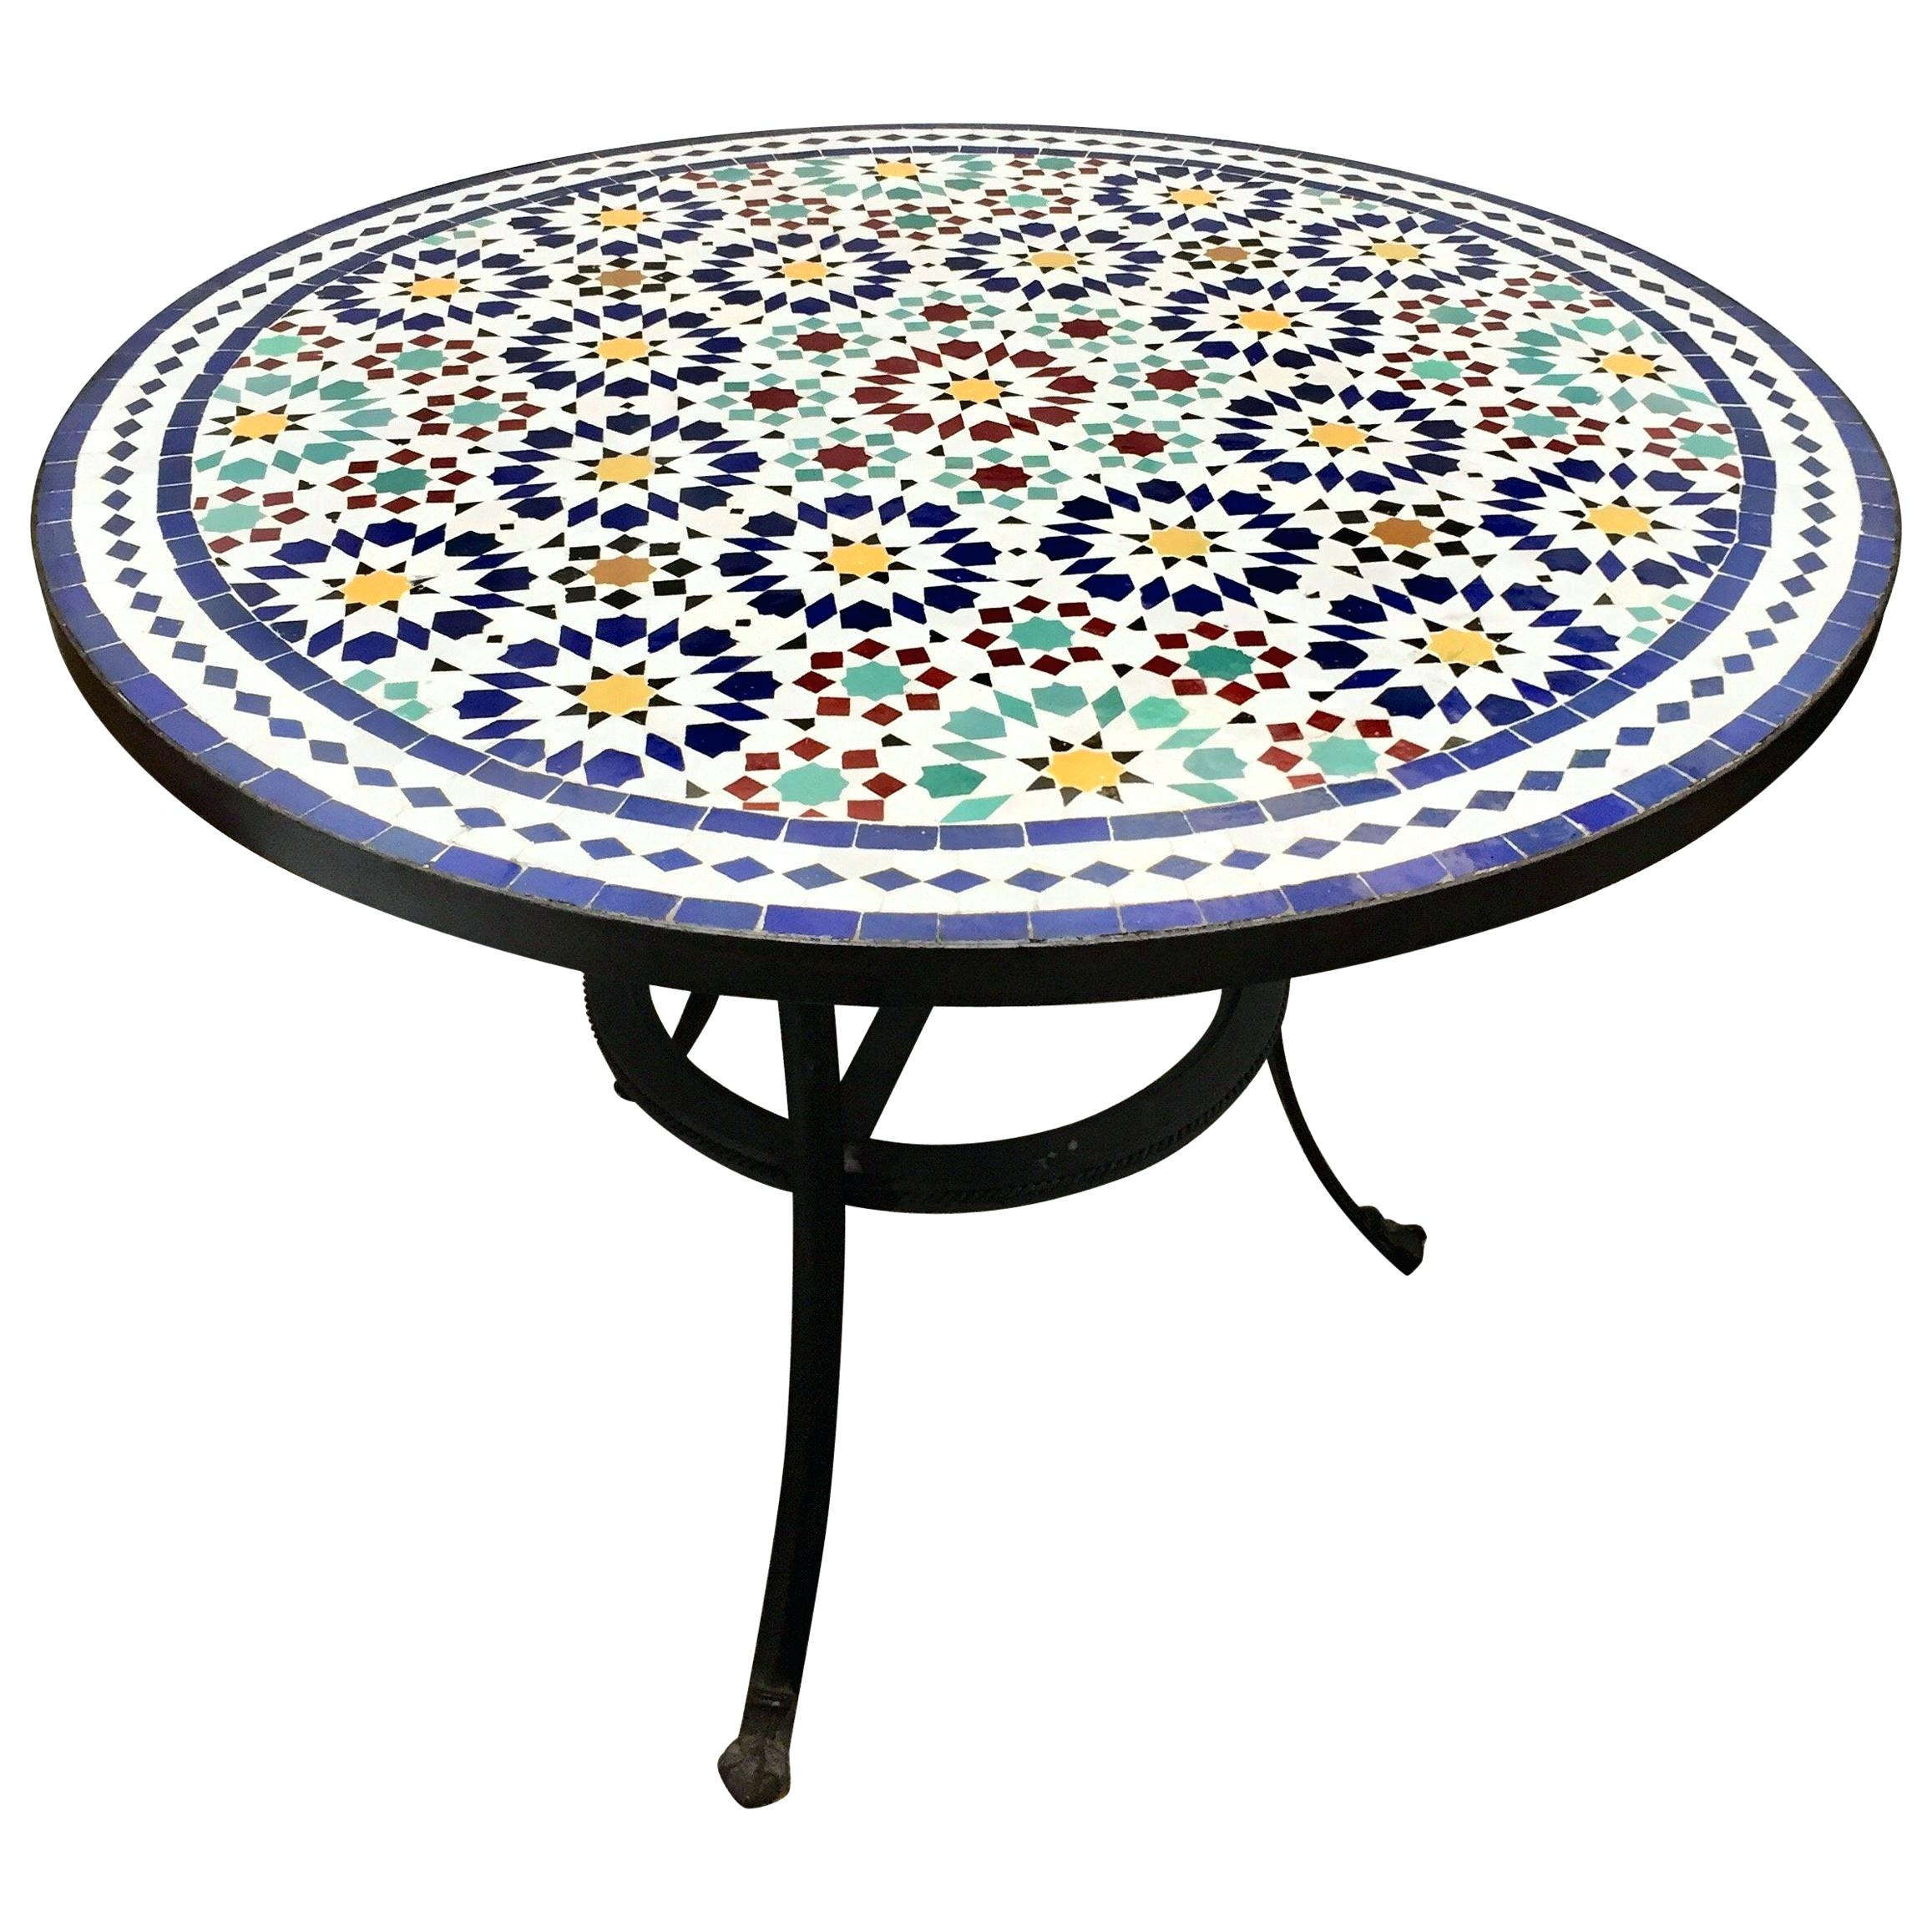 mosaic tile table blue full size decorating outdoor from fez traditional design diy accent indoor small round metal coffee with leaf white corner end asian lamp shade linen